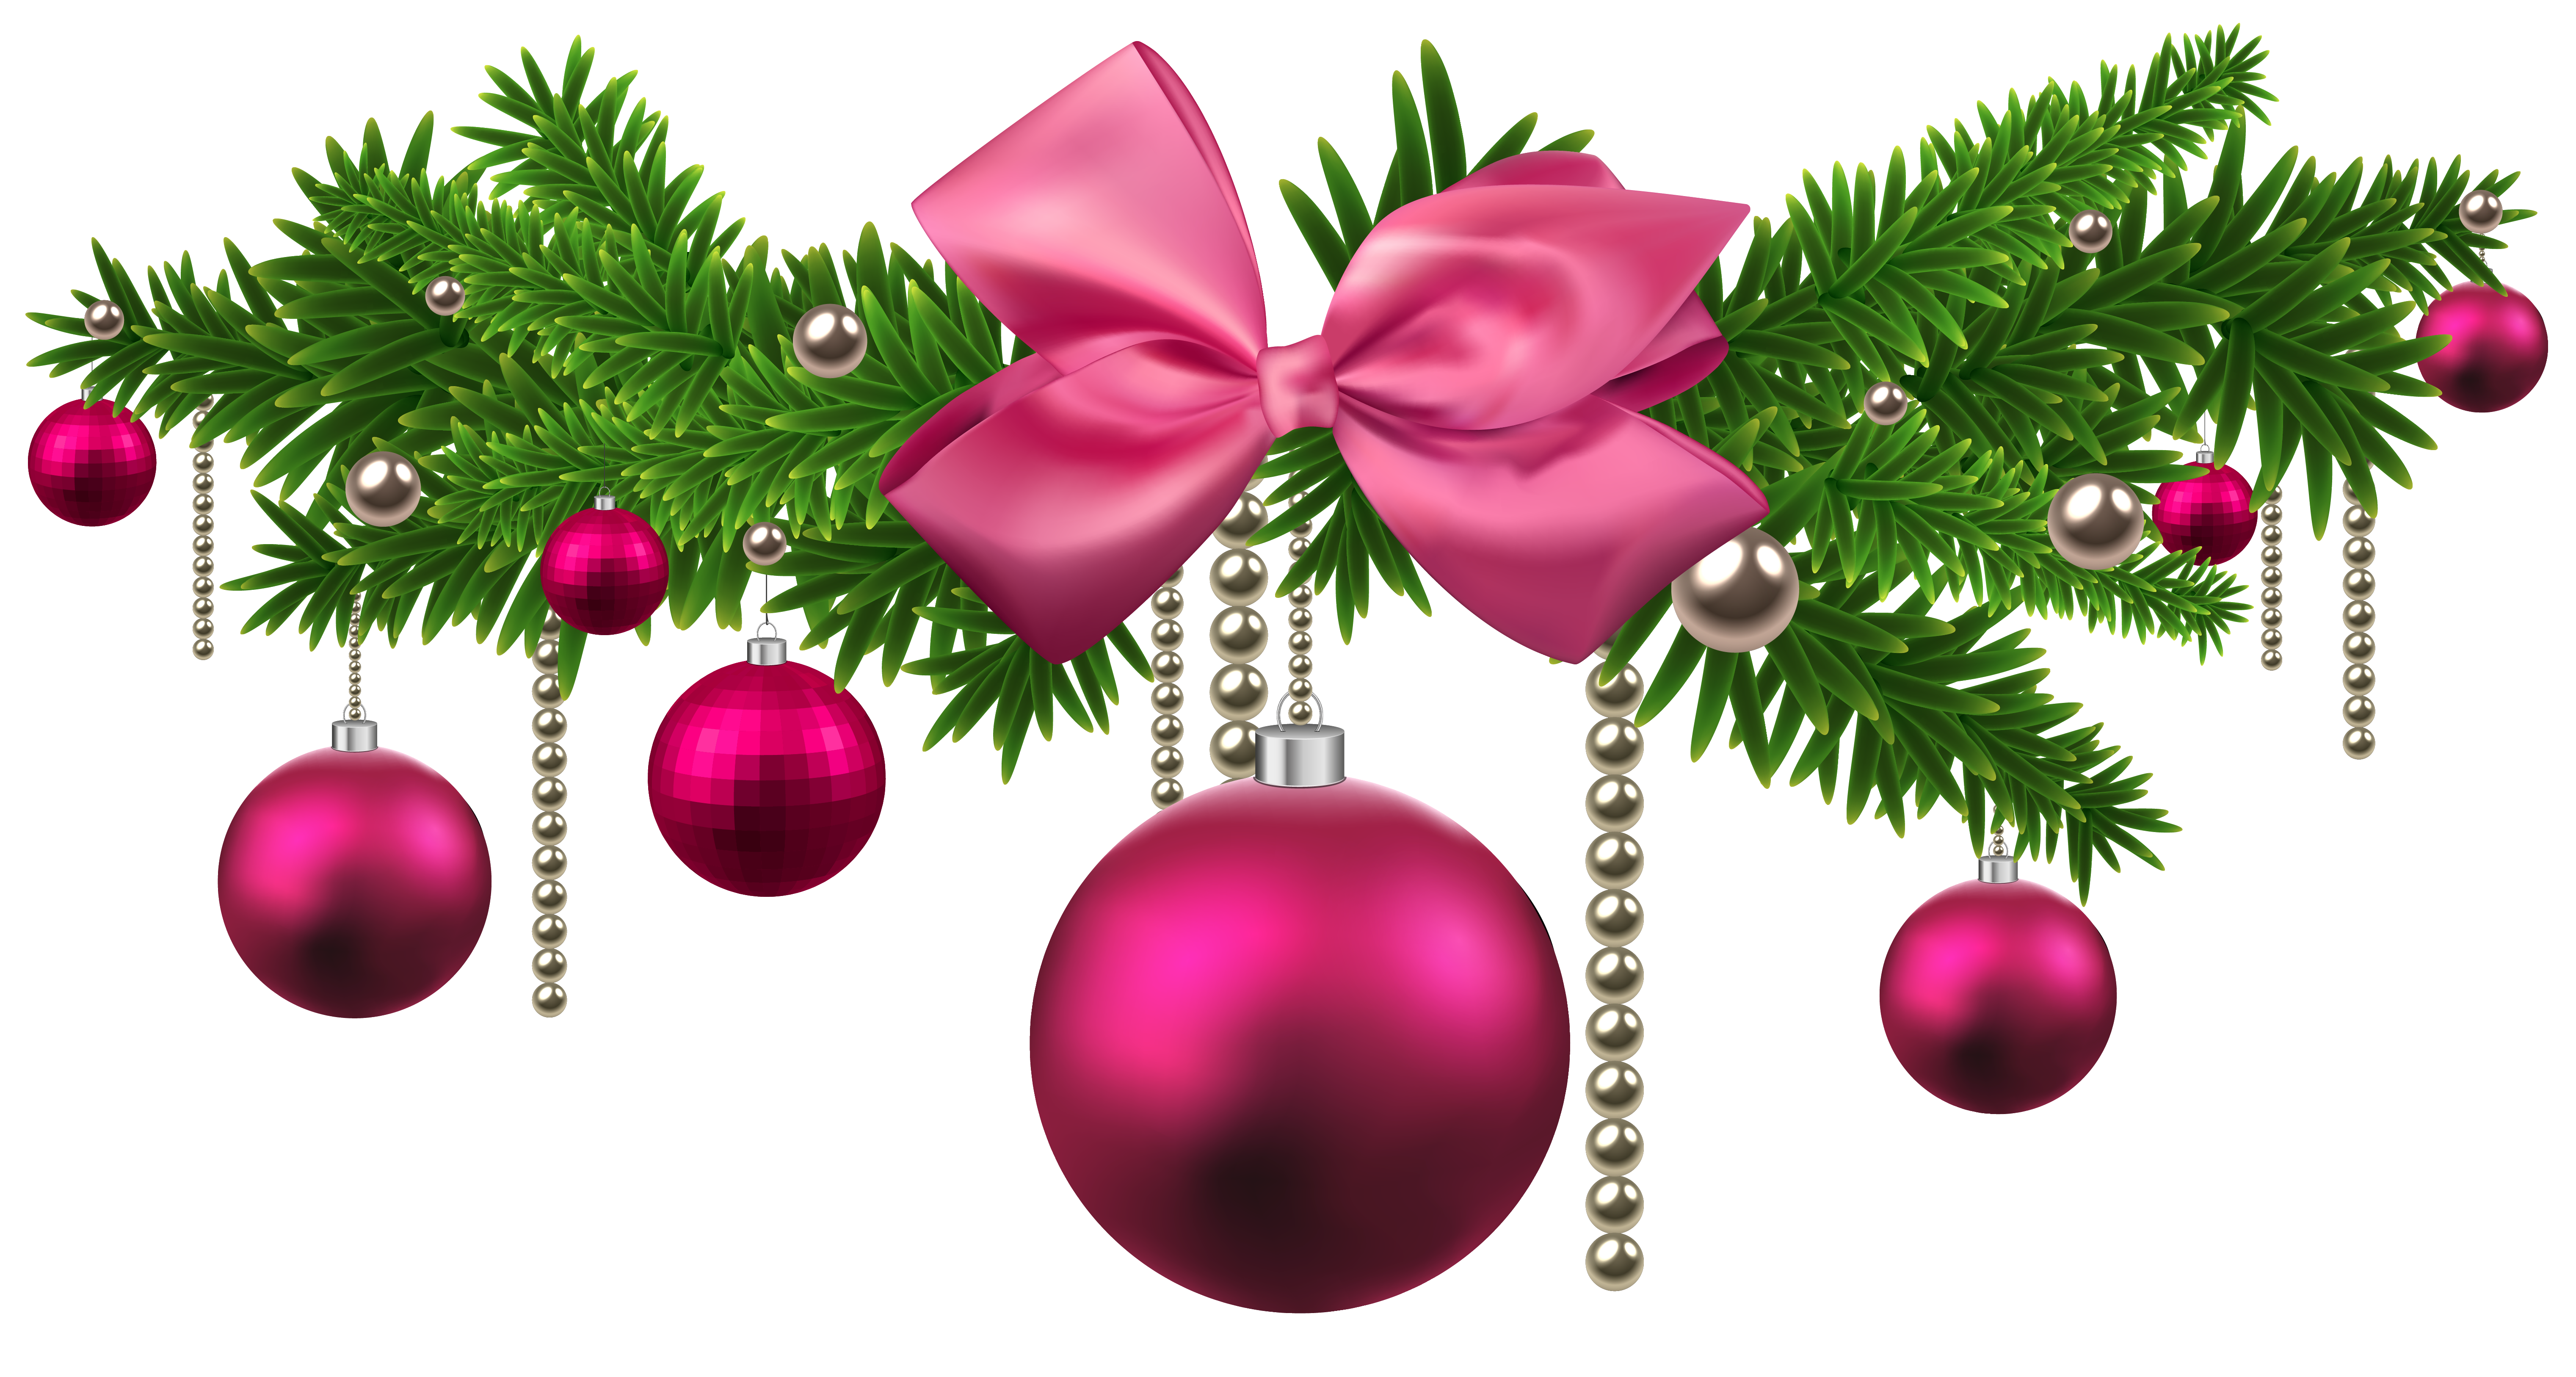 Christmas Ball Clipart.Ball Clipart Decoration Ball Decoration Transparent Free